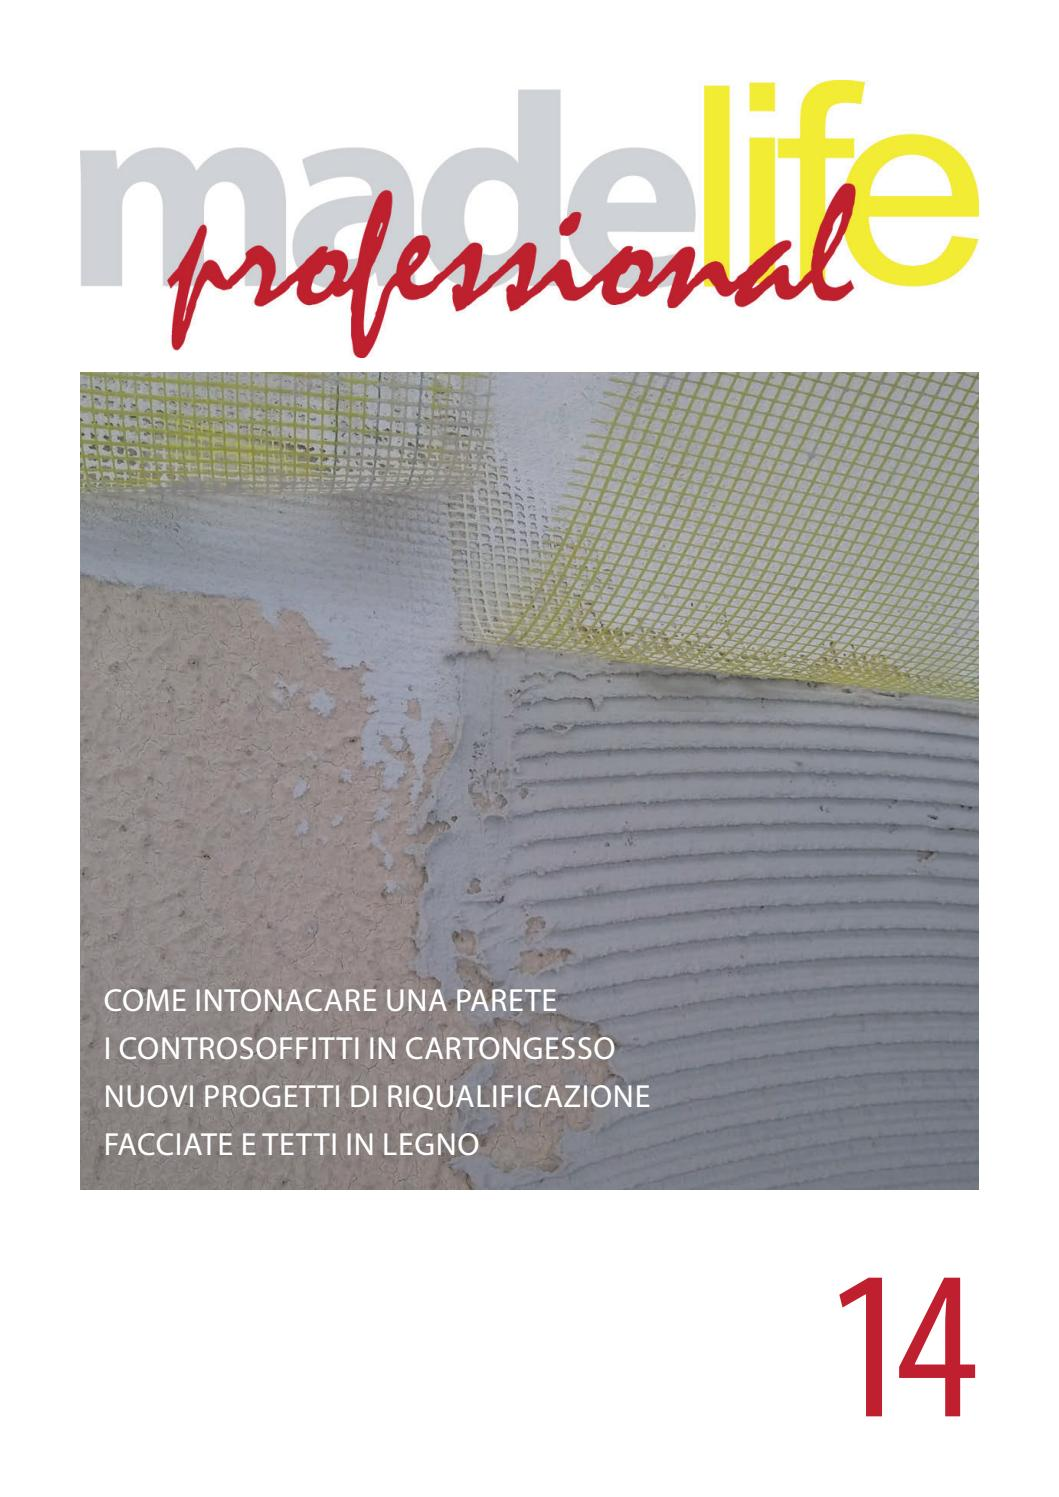 Controsoffitti Cartongesso Completi Quanto Costa madelife professional - 14 by gruppo made - issuu